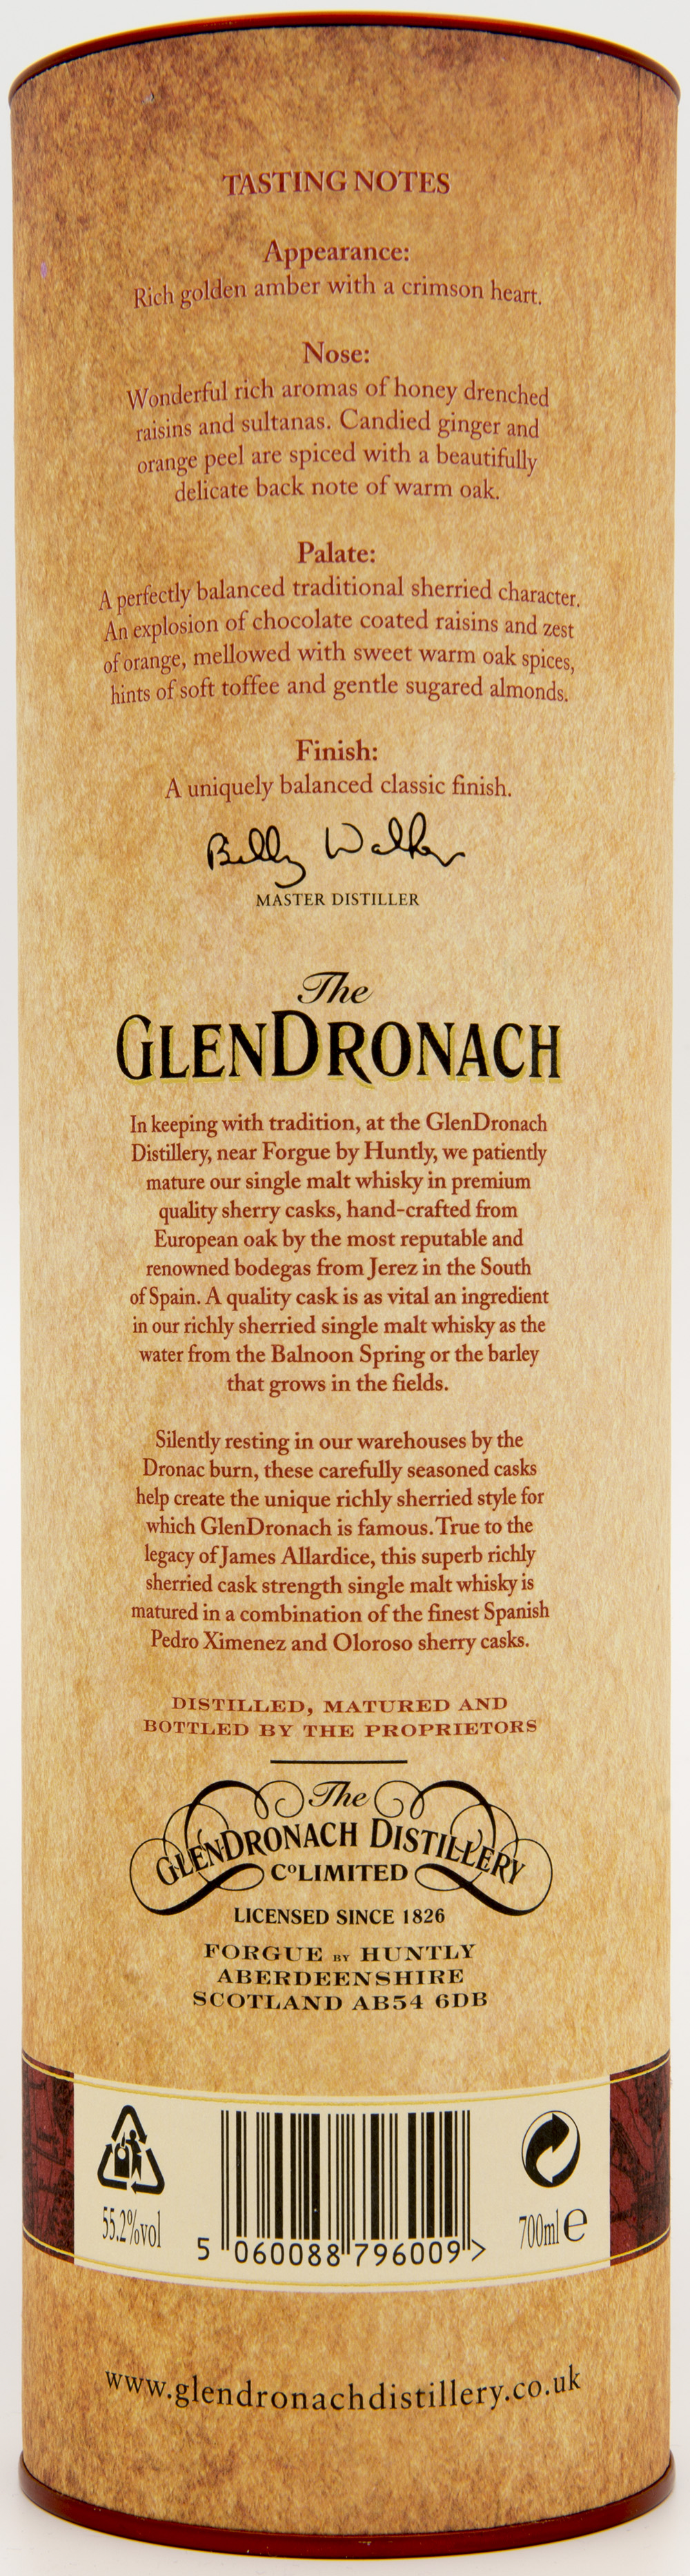 Billede: DSC_4839 - The Glendronach Cask Strength Batch 2 - tube back.jpg